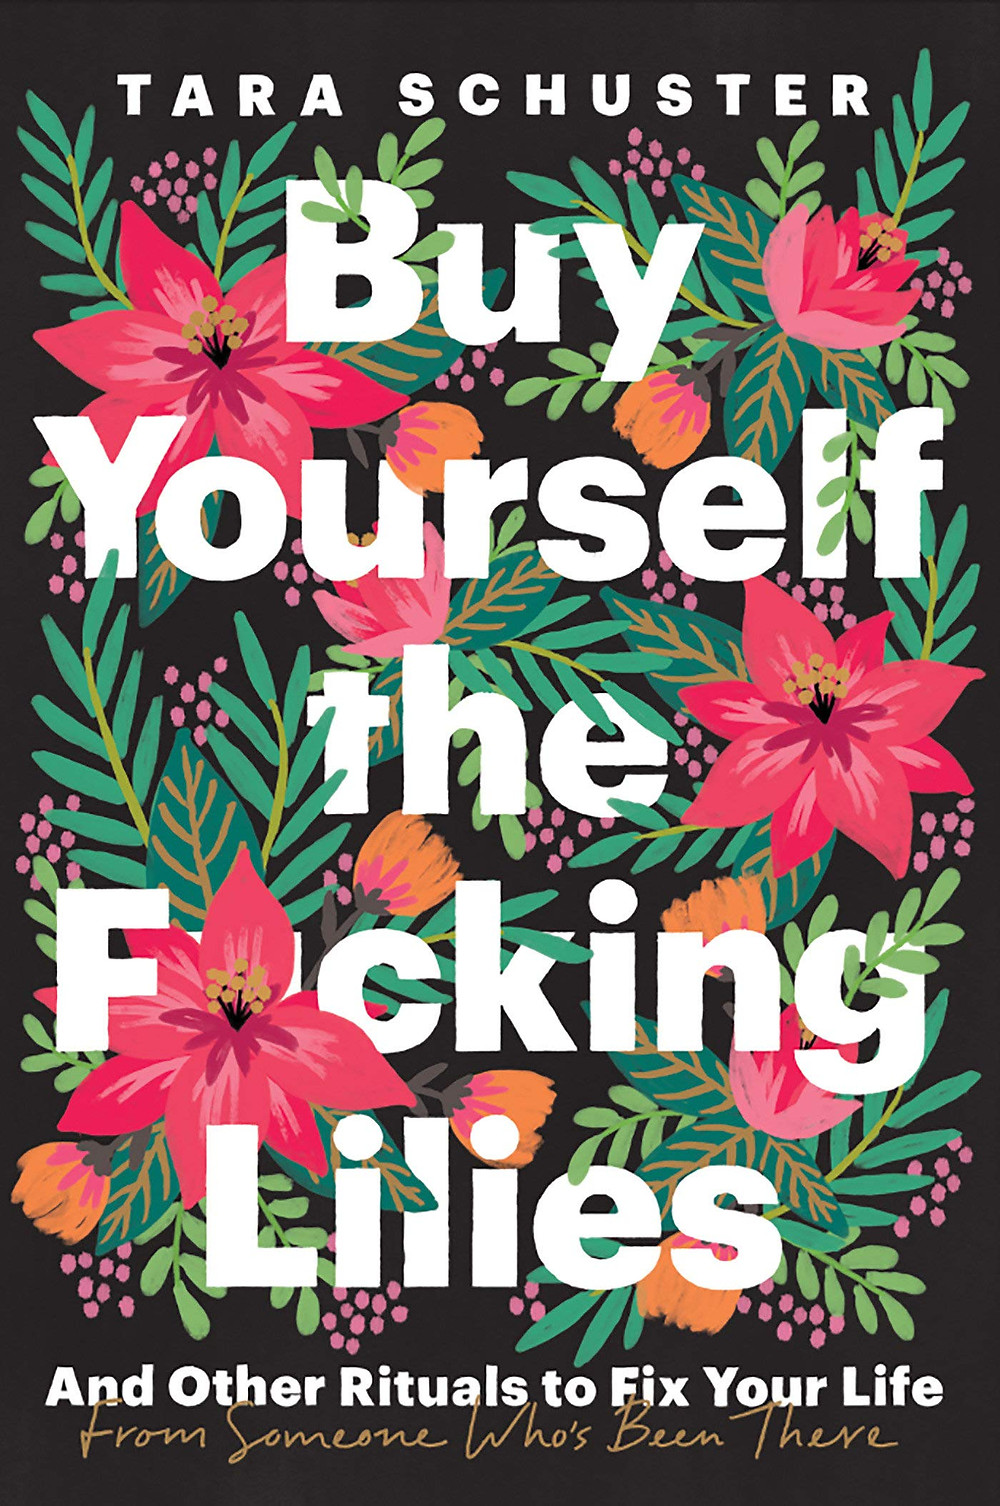 Buy Yourself the Fucking Lilies by Tara Schuster